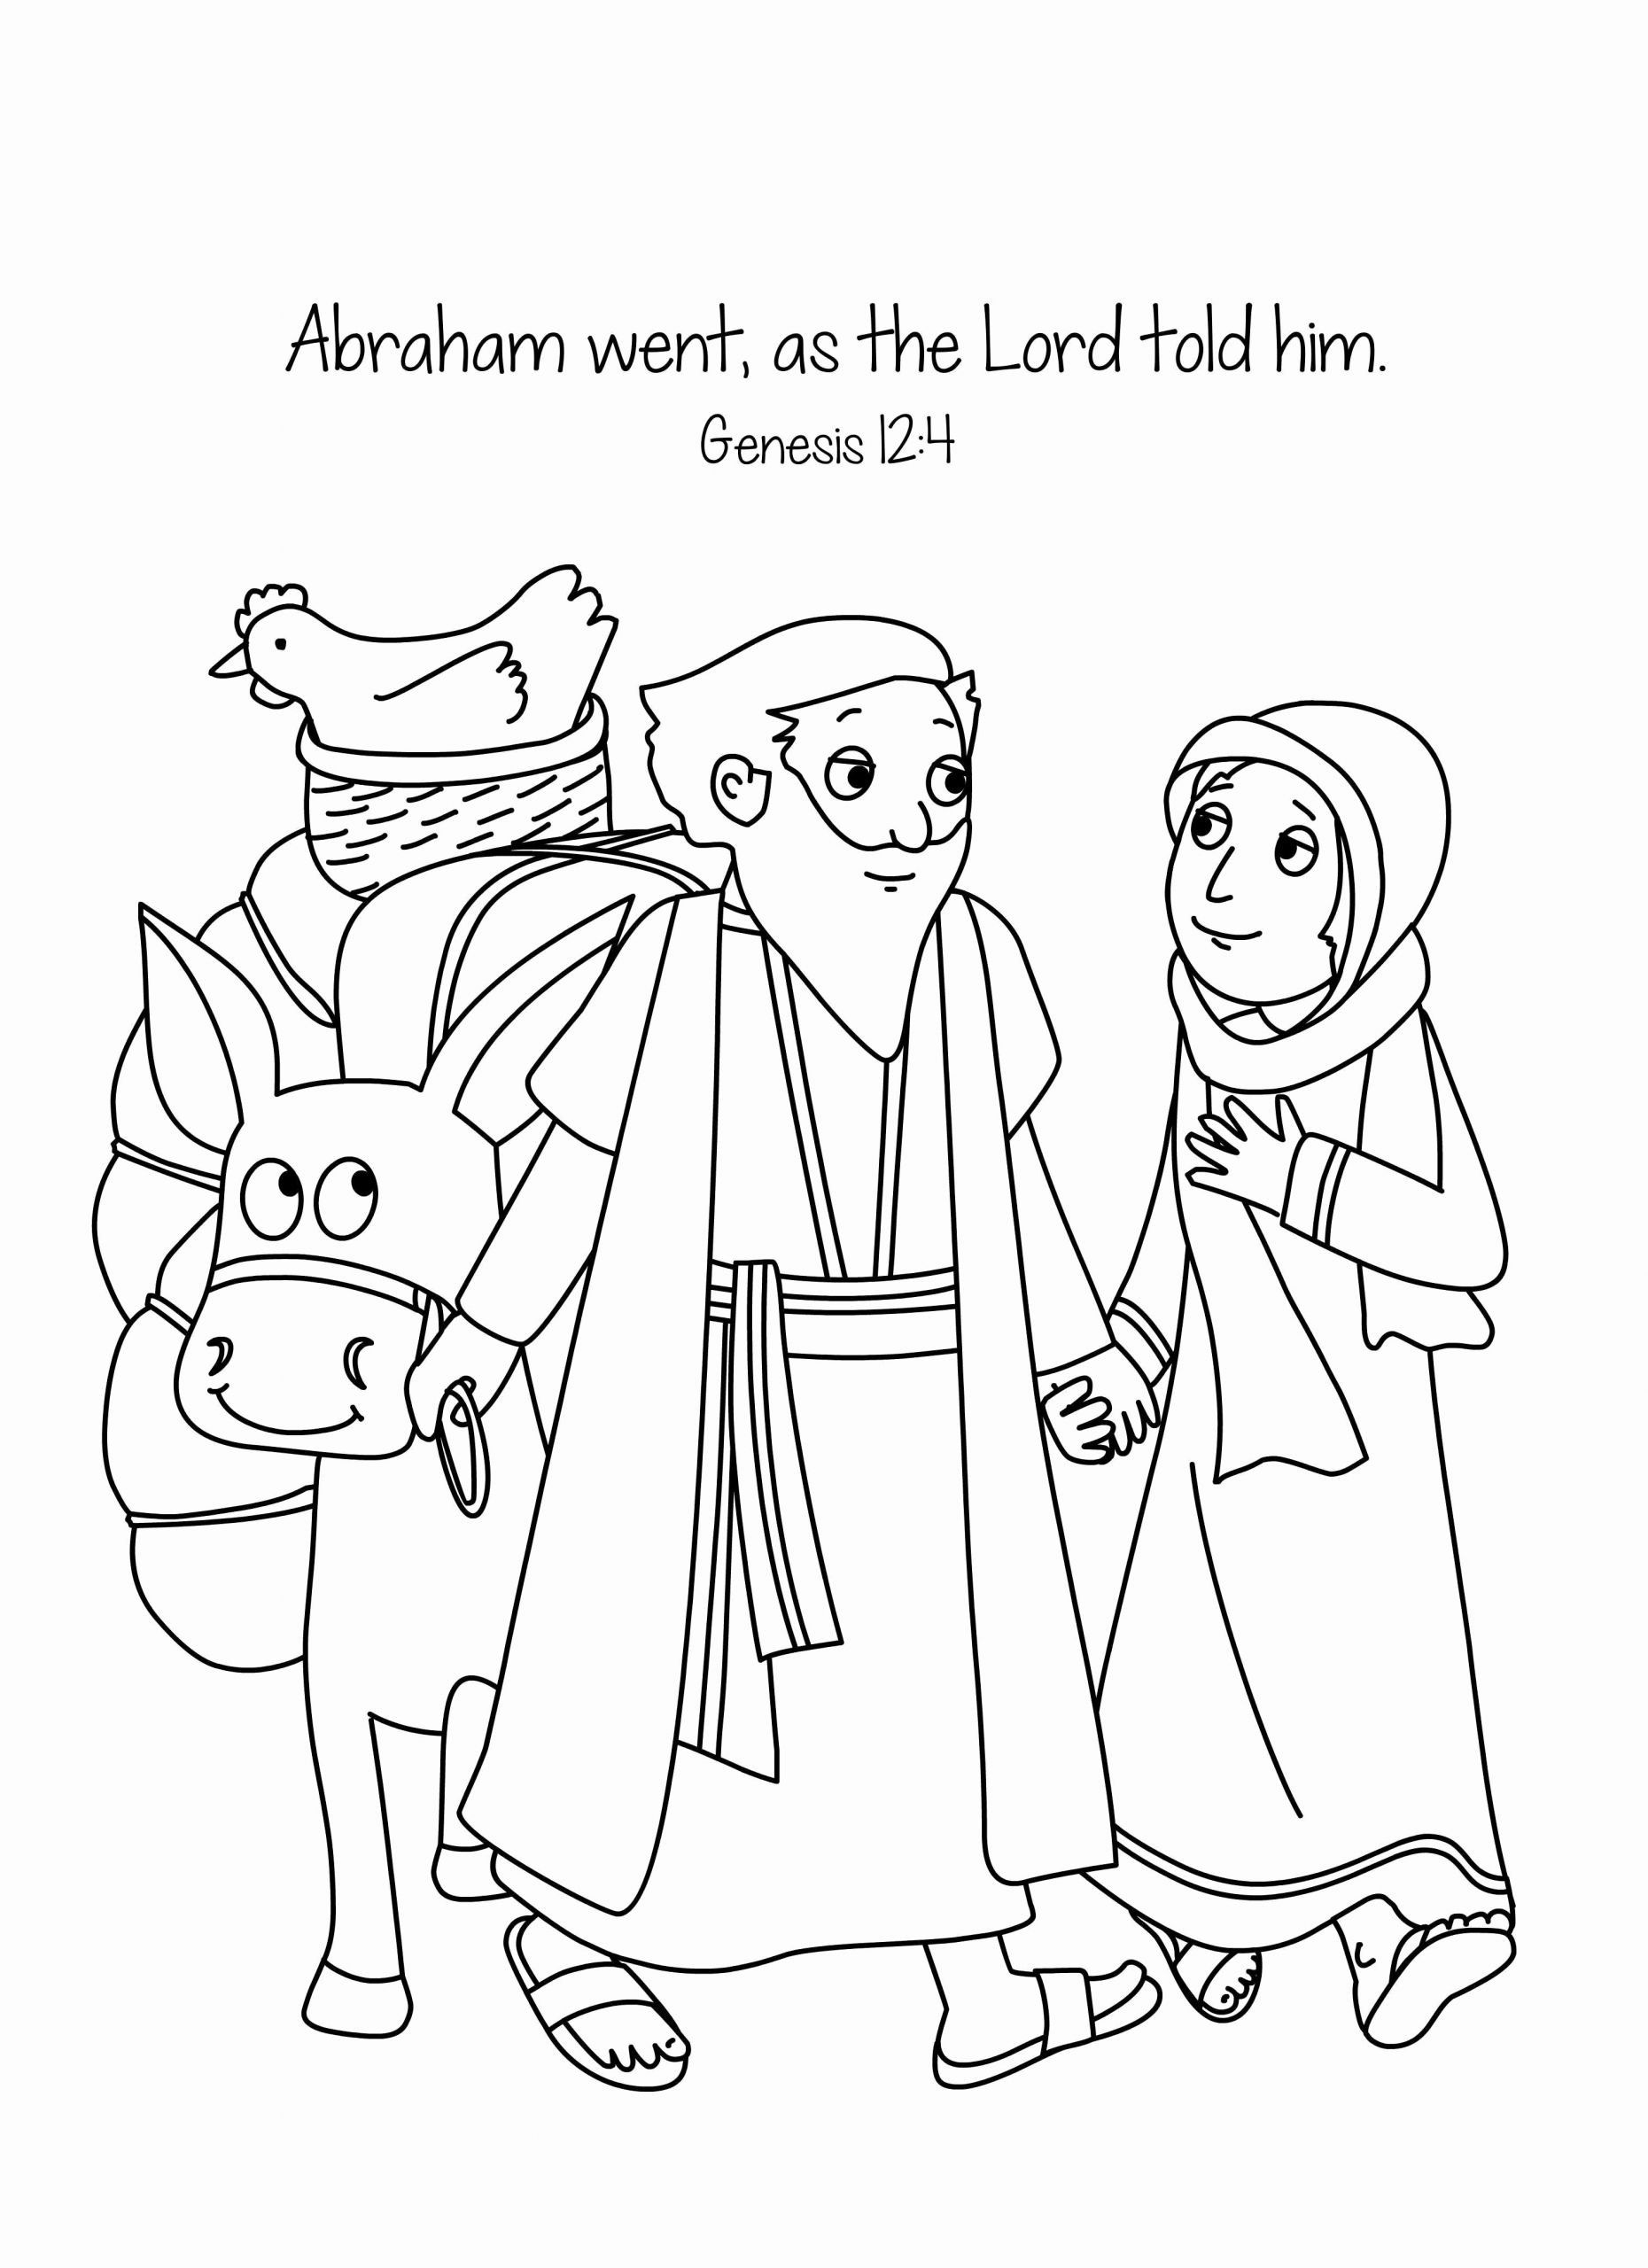 Abraham And Isaac Coloring Page Best Of Abraham And Isaac Coloring Page At Getcolorings In 2020 Abraham Bible Crafts Bible Coloring Pages Bible Coloring